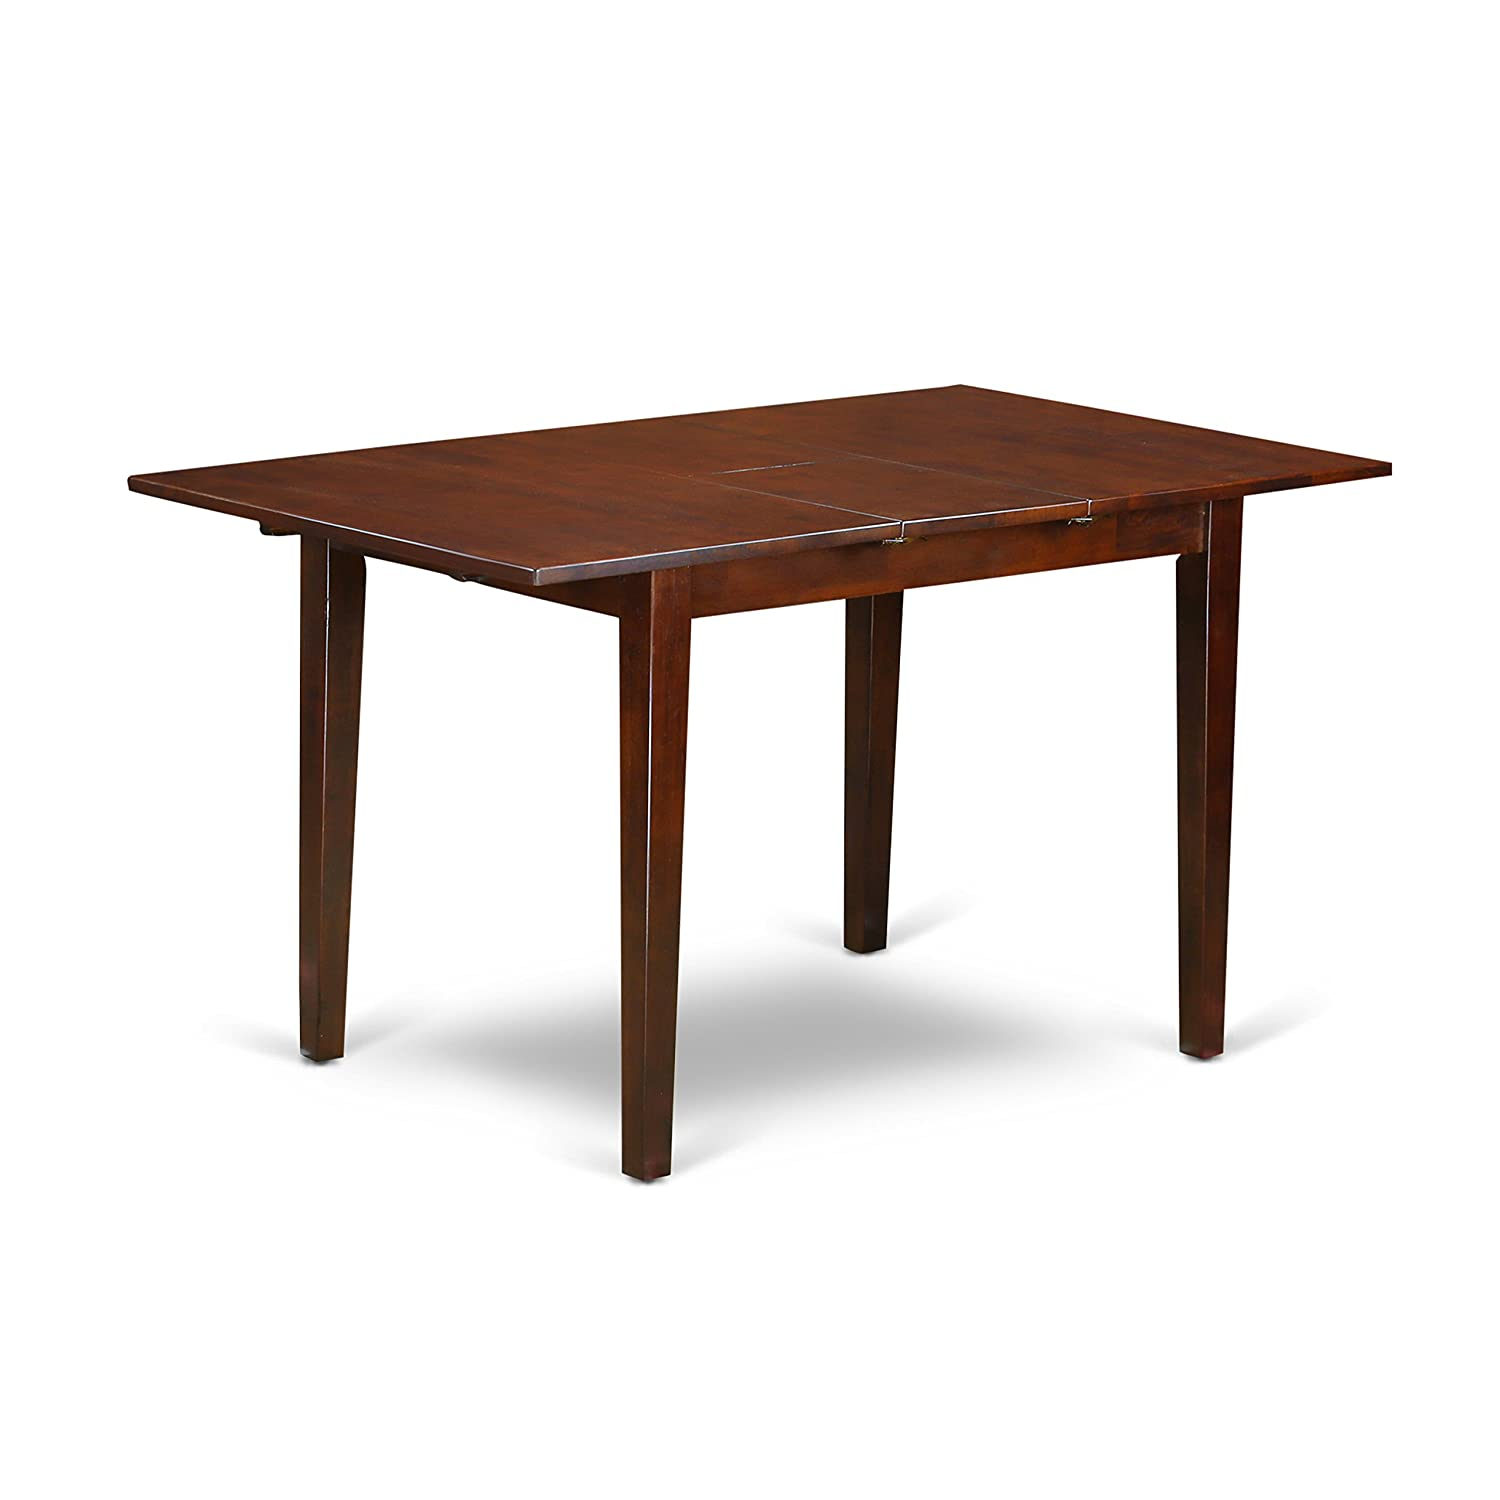 Picasso Table 32 in x 60in with 12 in butterfly leaf – Mahogany Finish